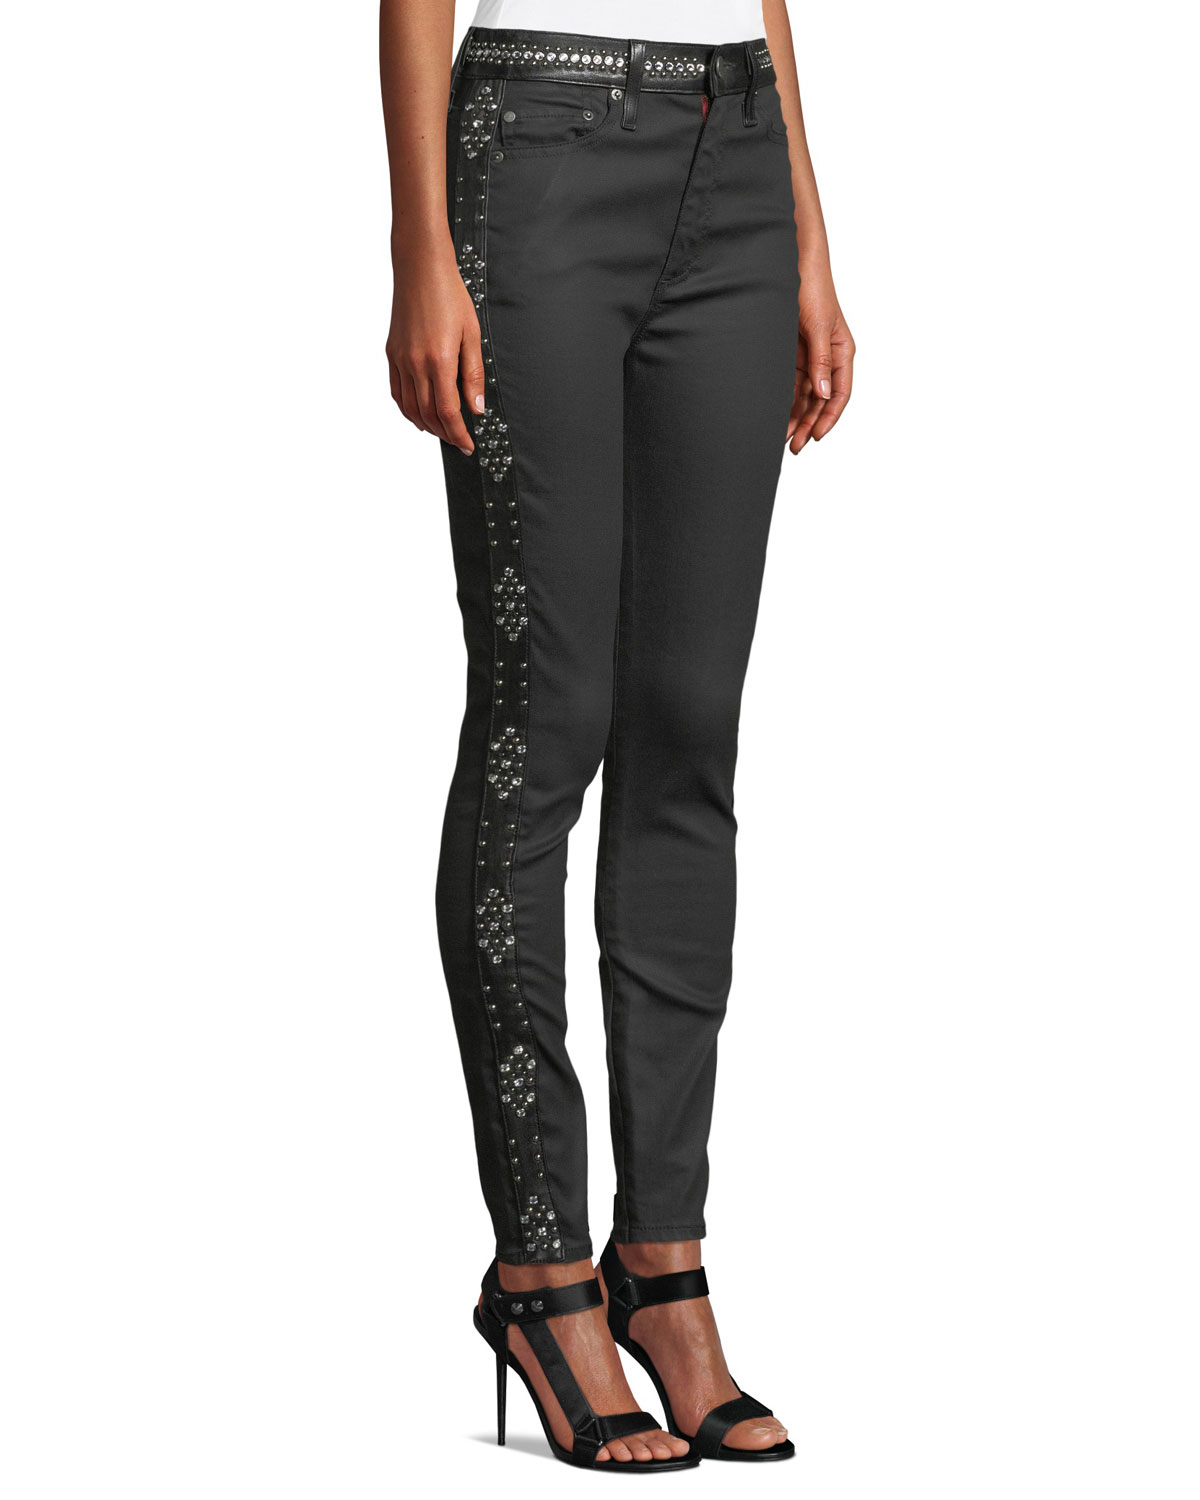 2db8aca2fd0e ALICE + OLIVIA JEANS Good High-Rise Studded Ankle Skinny Jeans ...